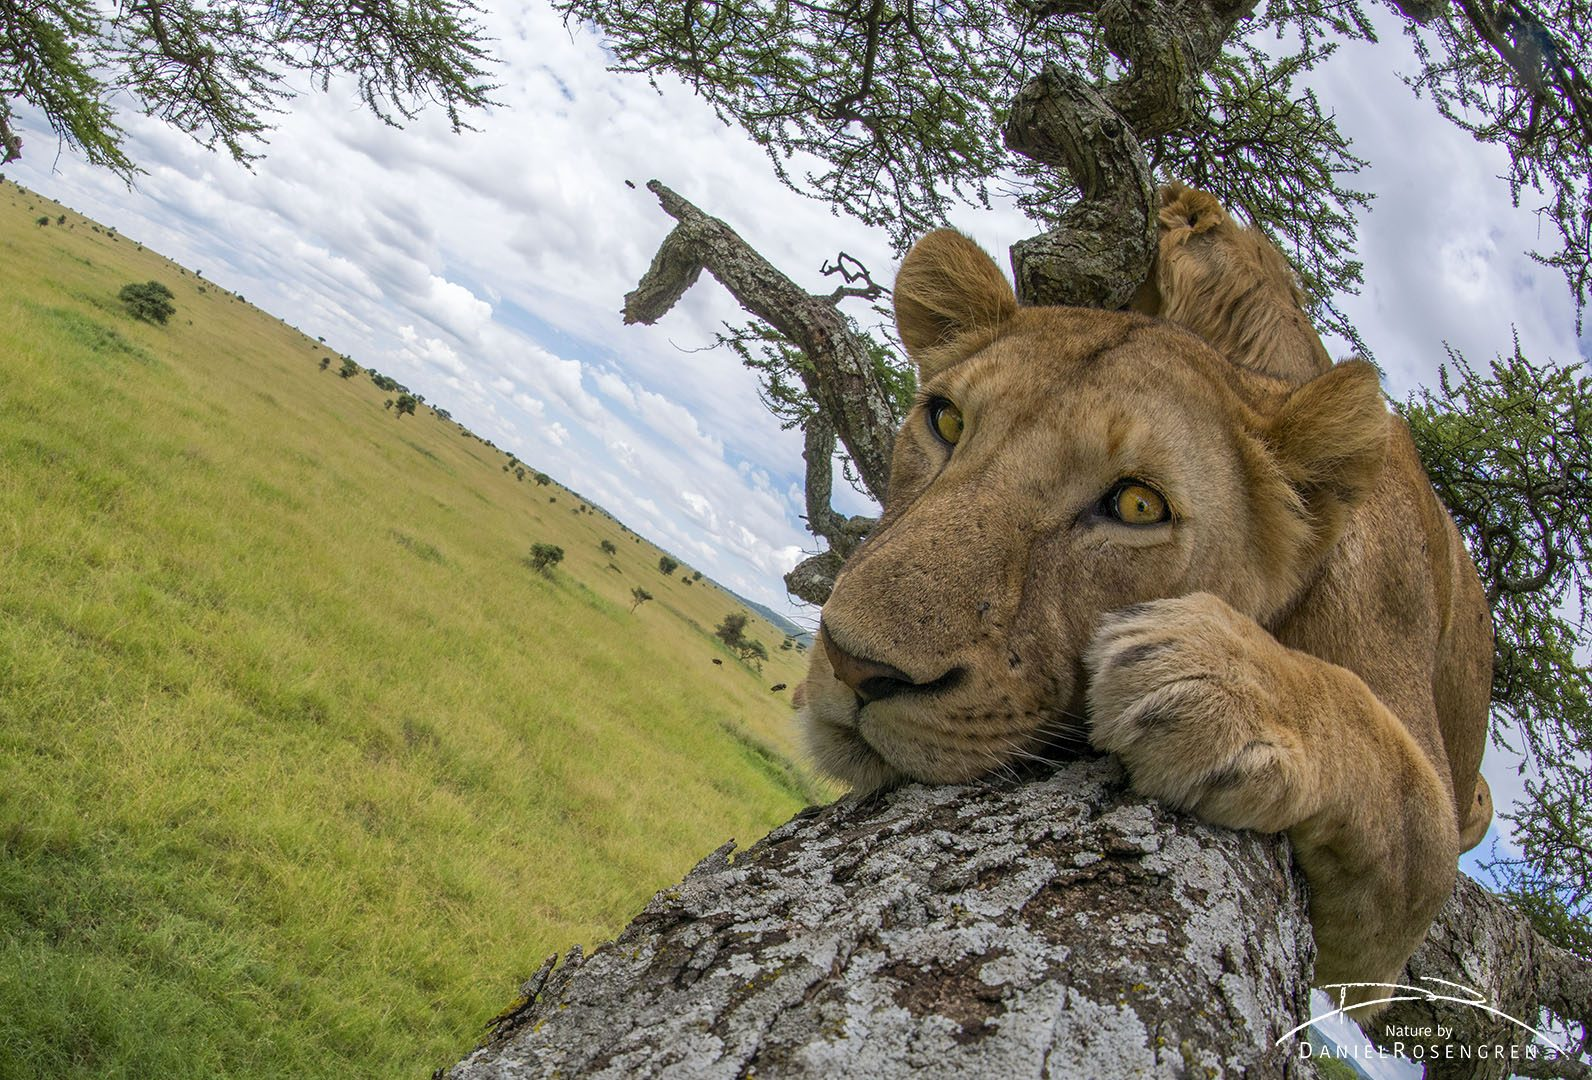 It might appear as if I was lying next to the lion in the tree to get this shot, I'm not. © Daniel Rosengren